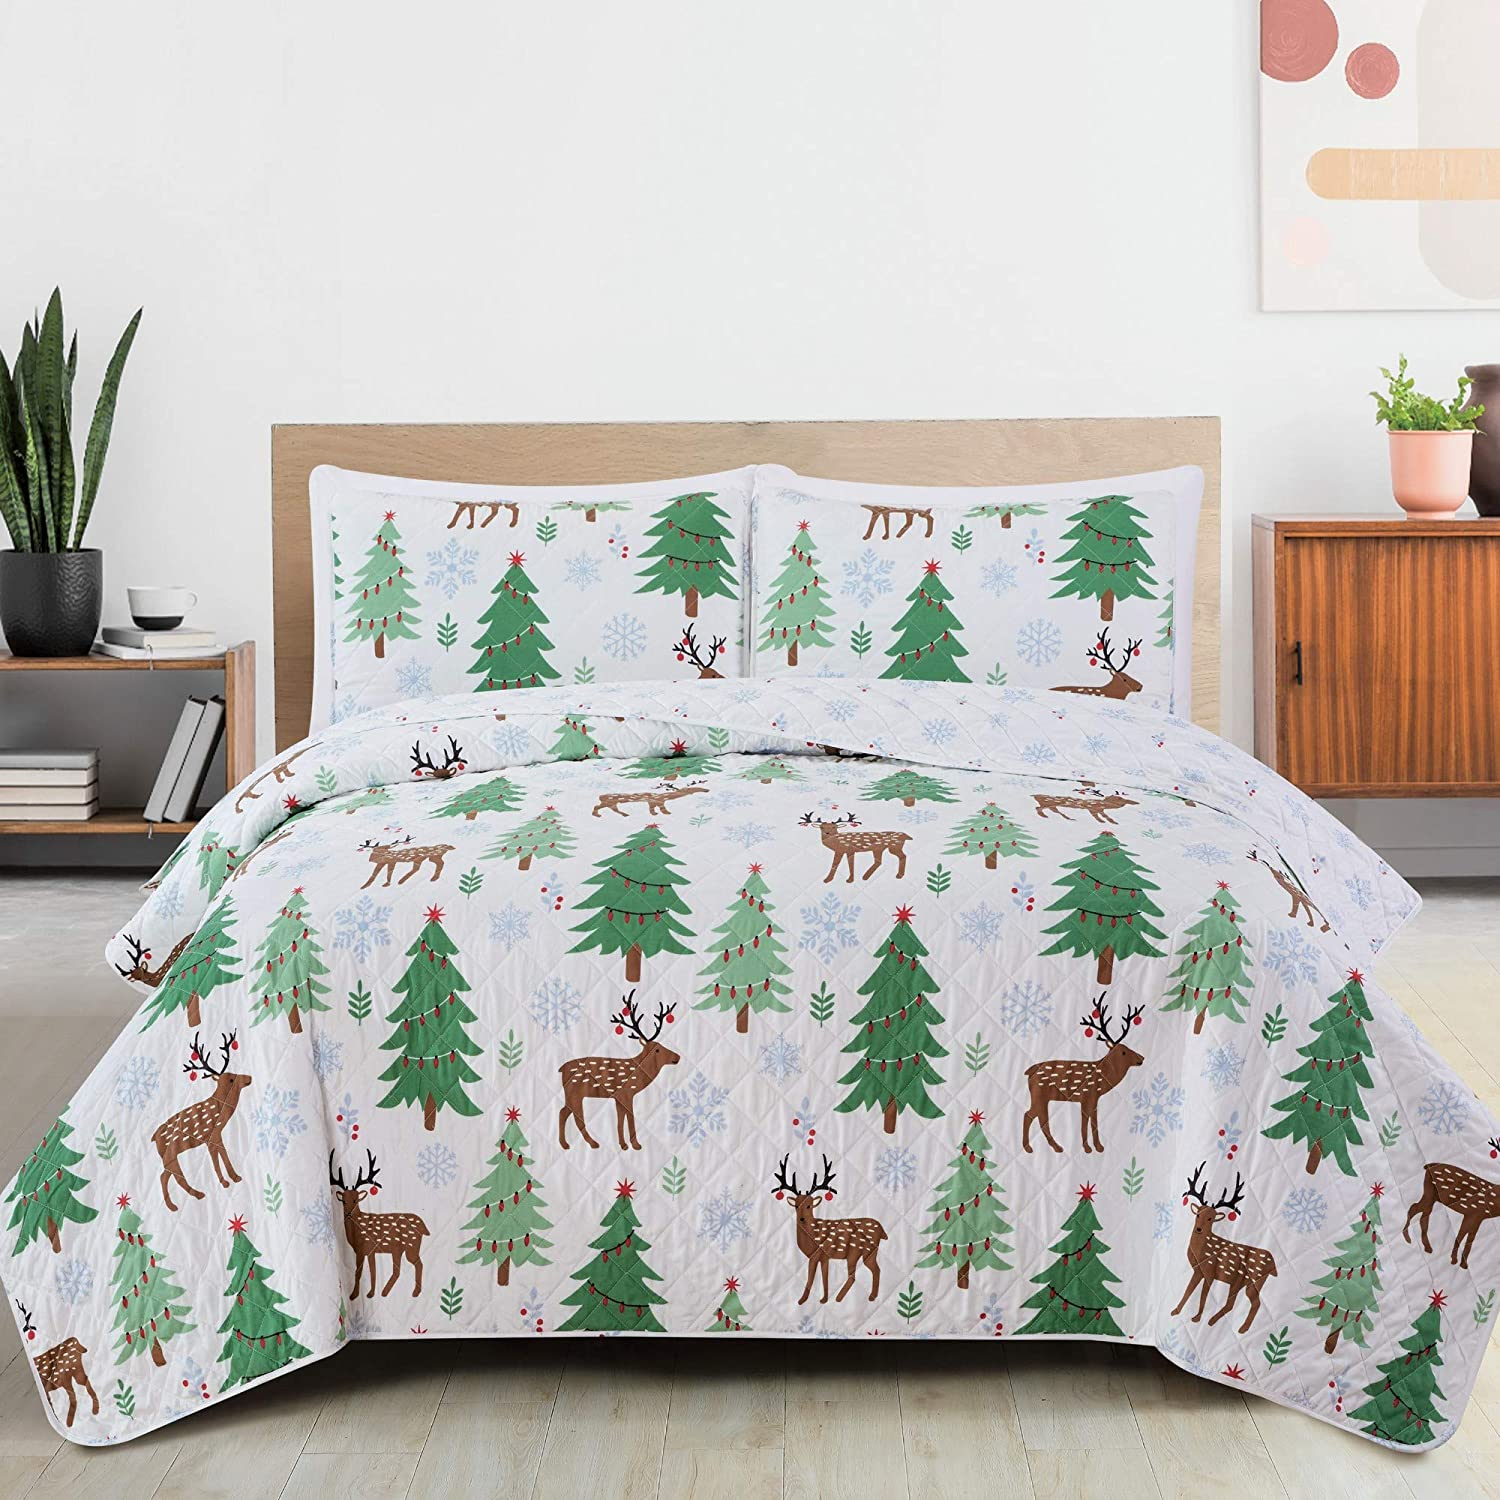 Great Bay Home 3-Piece Reversible Quilt Set with Shams. Microfiber Bedspread with Holiday Pattern. Holly Collection Holiday Quilt Set (King)